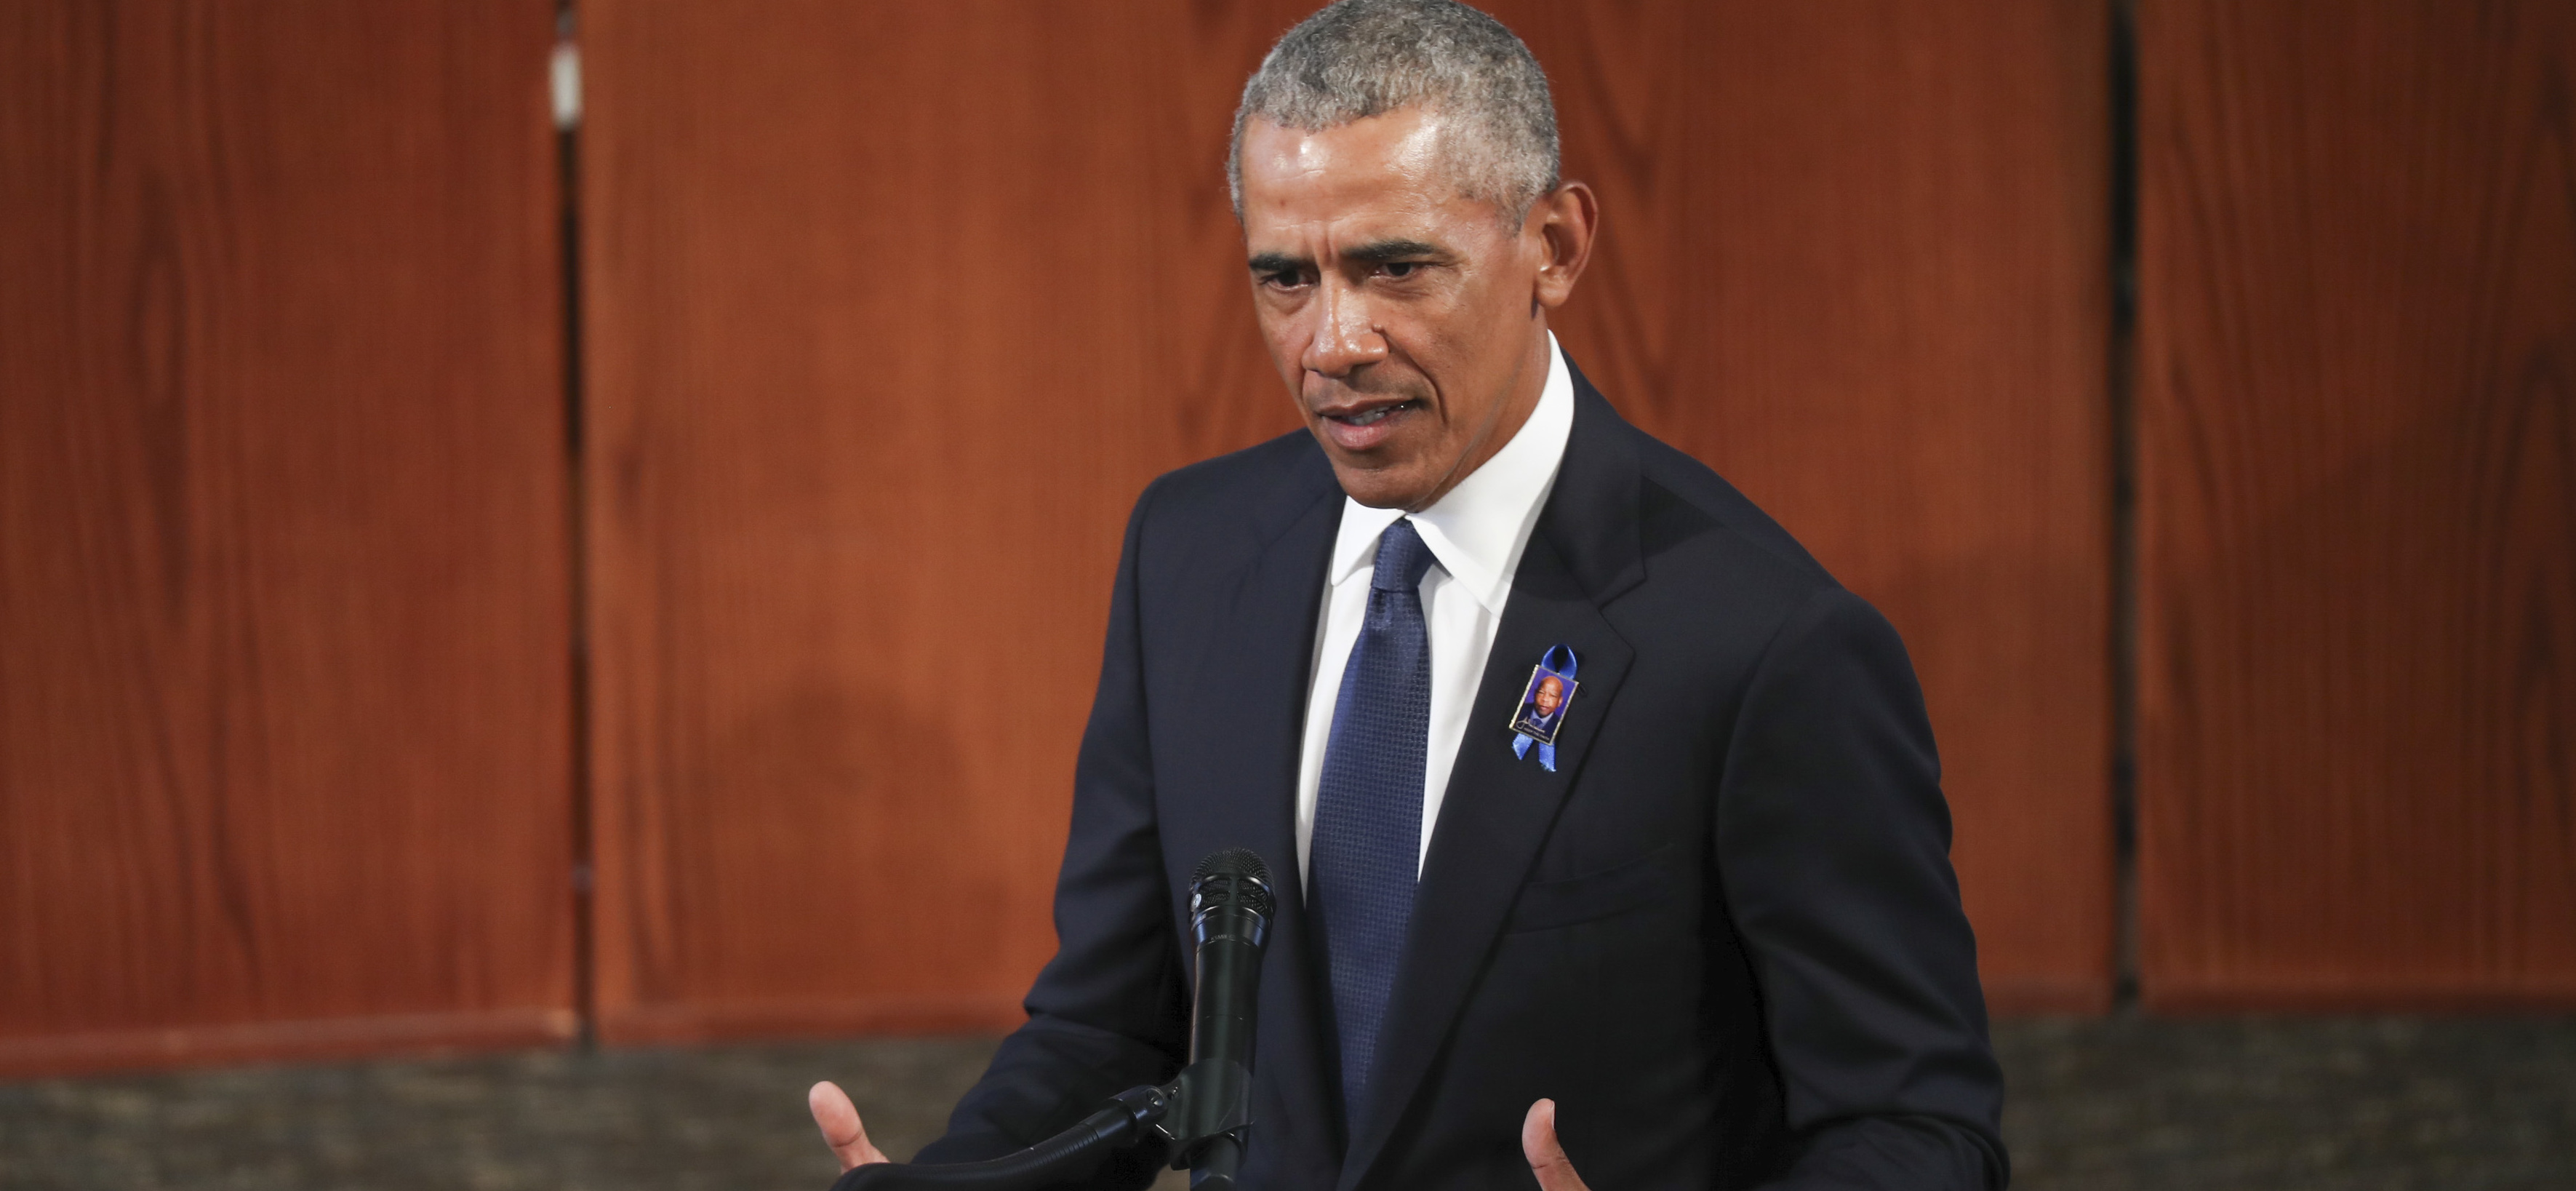 Obama Memoir Prompts Rescheduling of Booker Prize